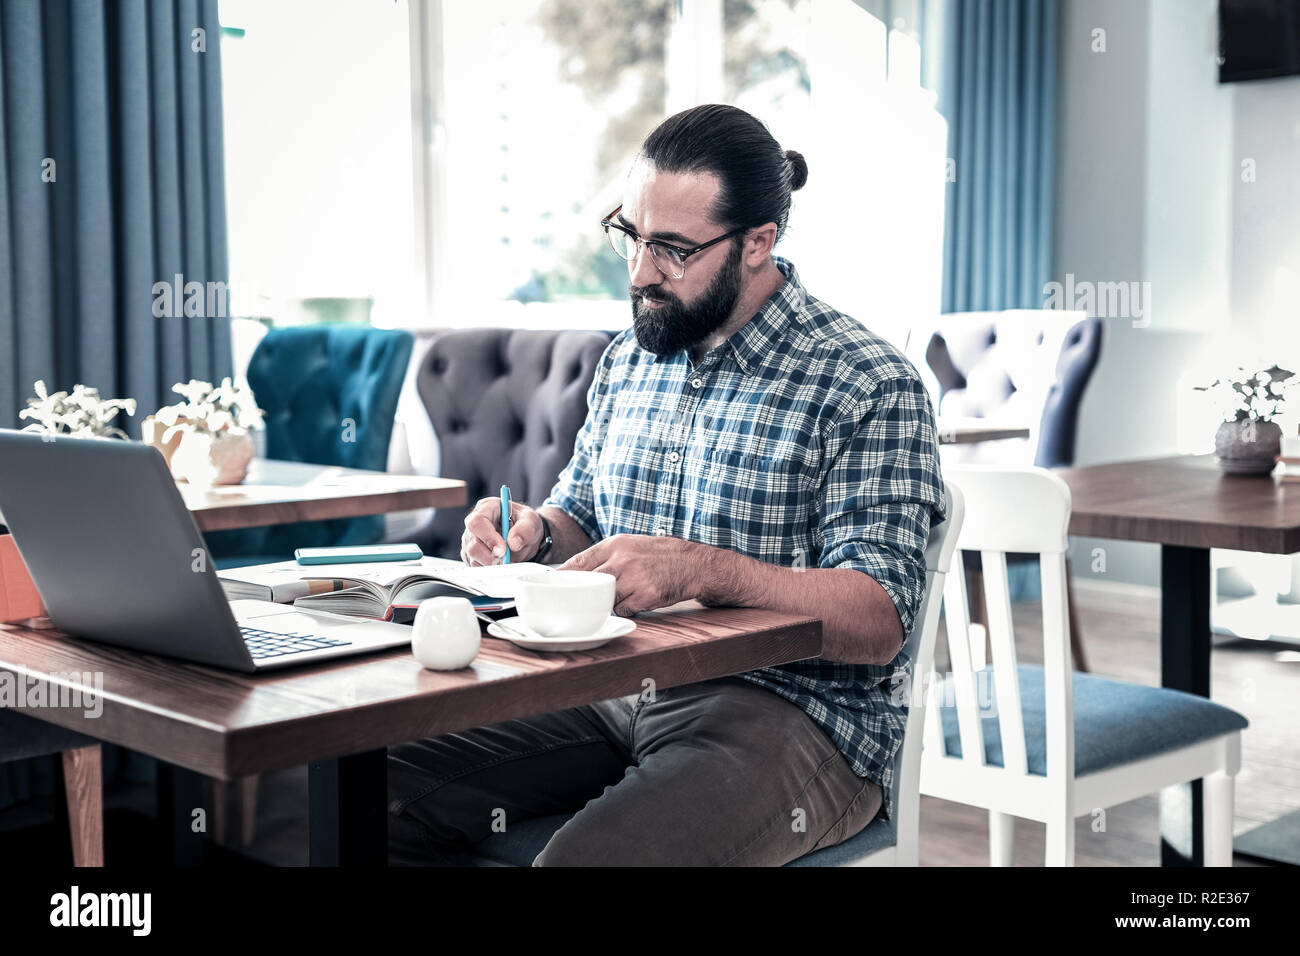 Prosperous professional journalist working hard making some notes - Stock Image